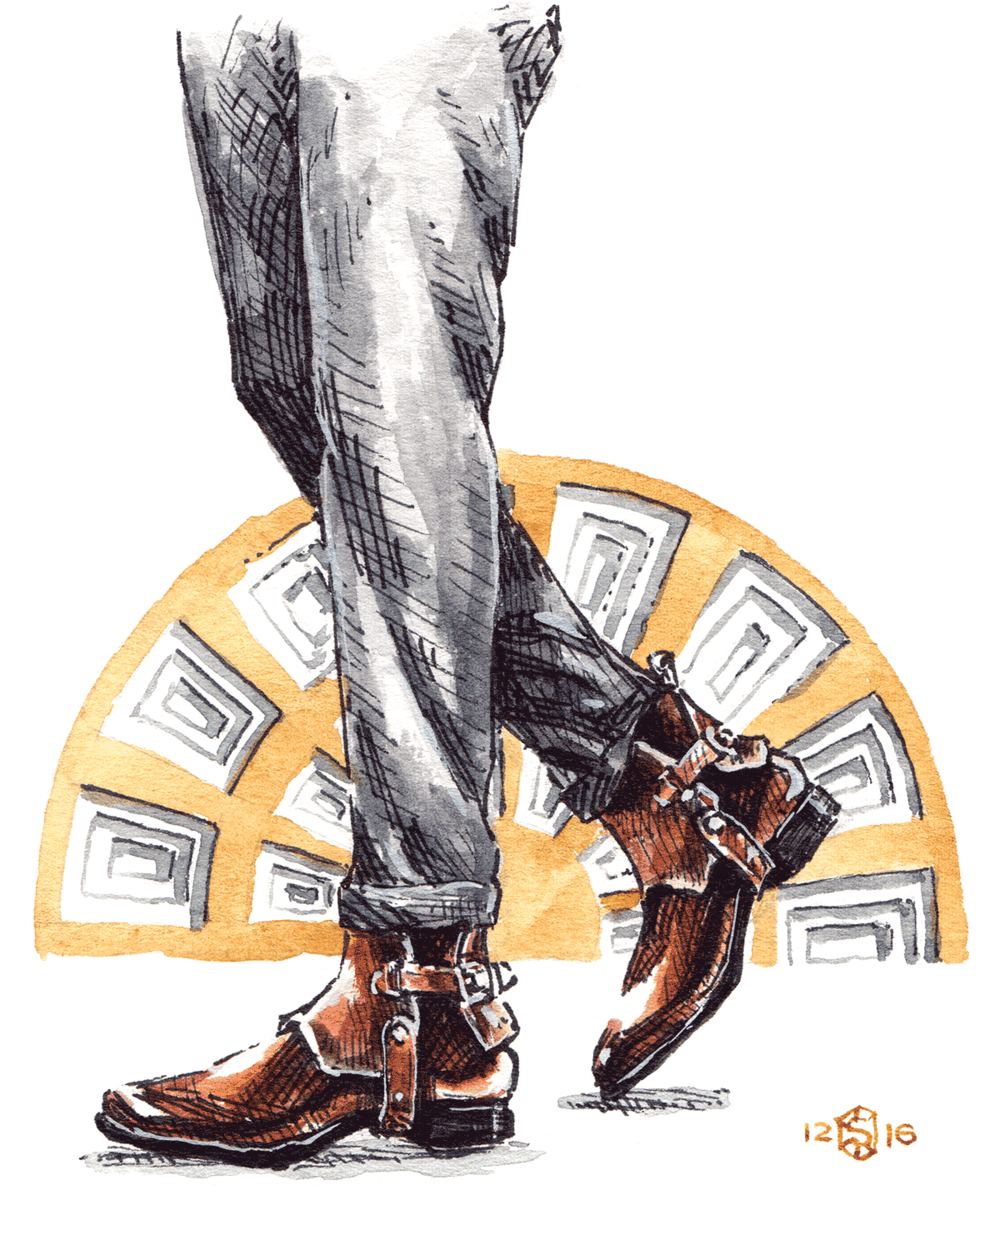 Illustrated legs with trousers wearing Santoni boots and a coffered painting as background